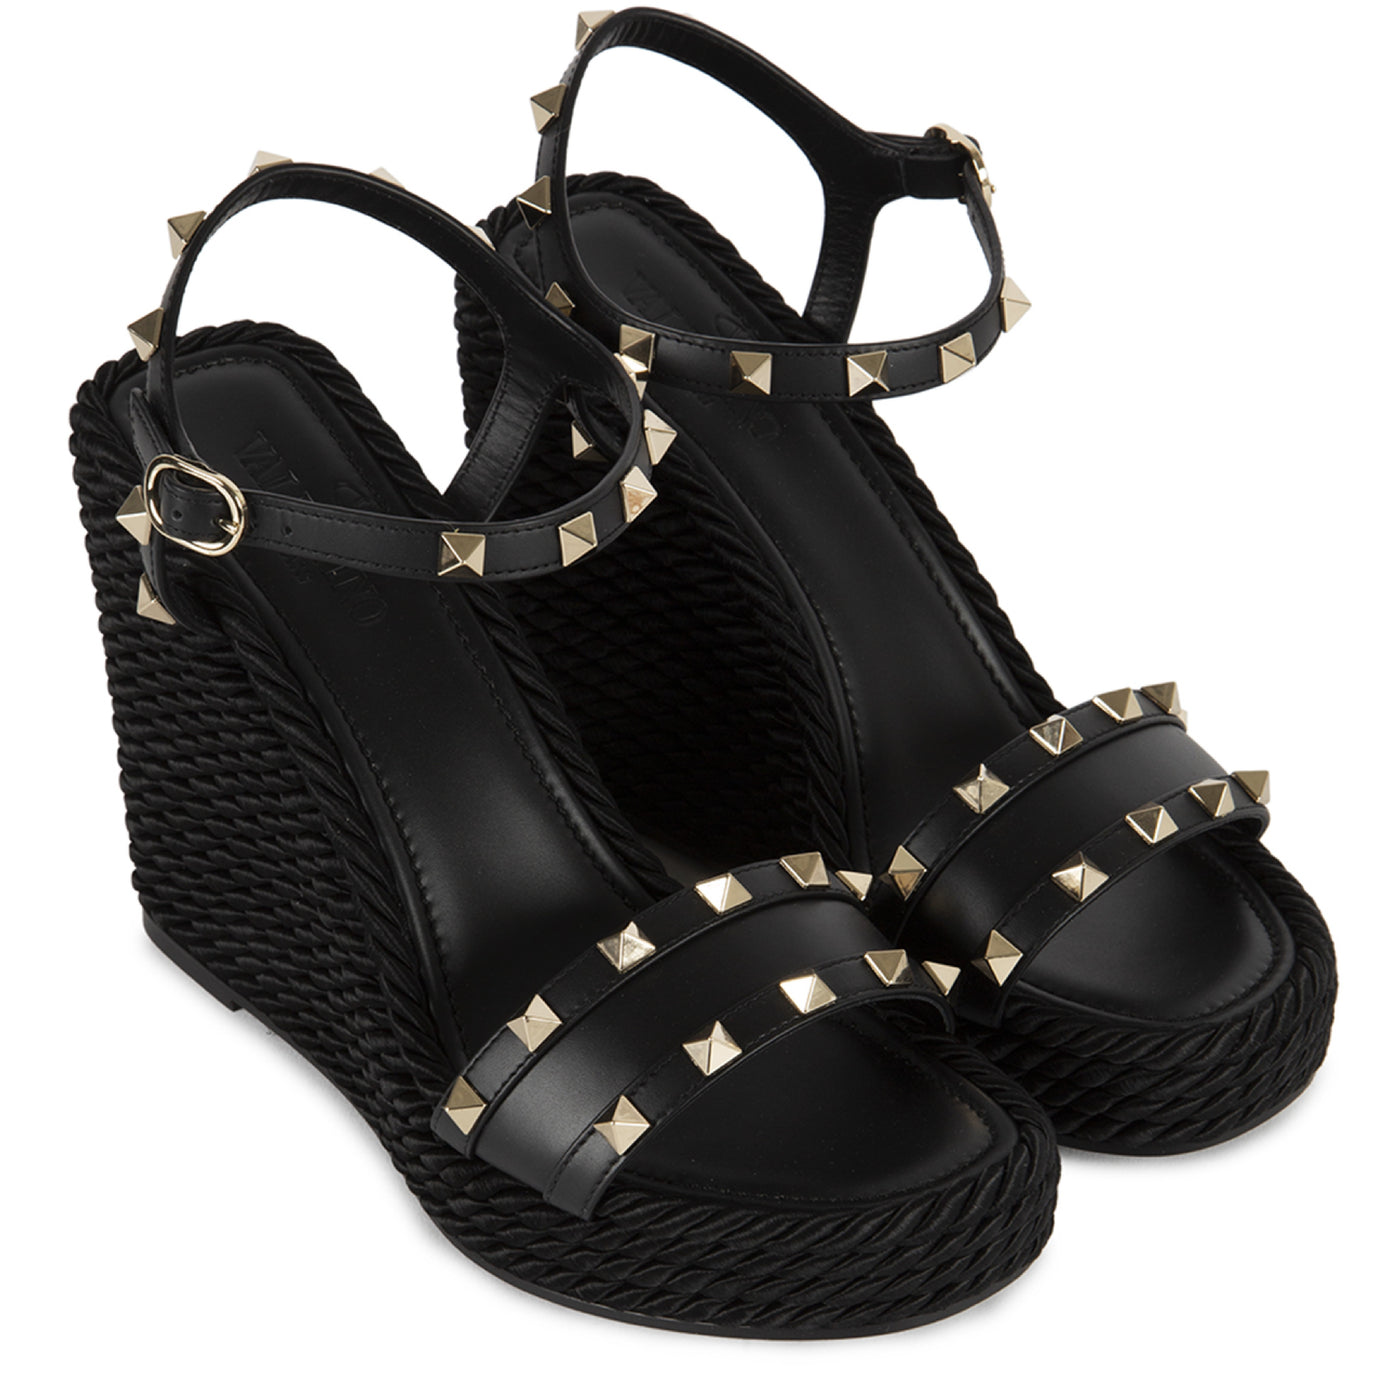 Load image into Gallery viewer, VALENTINO ROCKSTUD WEDGE SANDAL BLACK